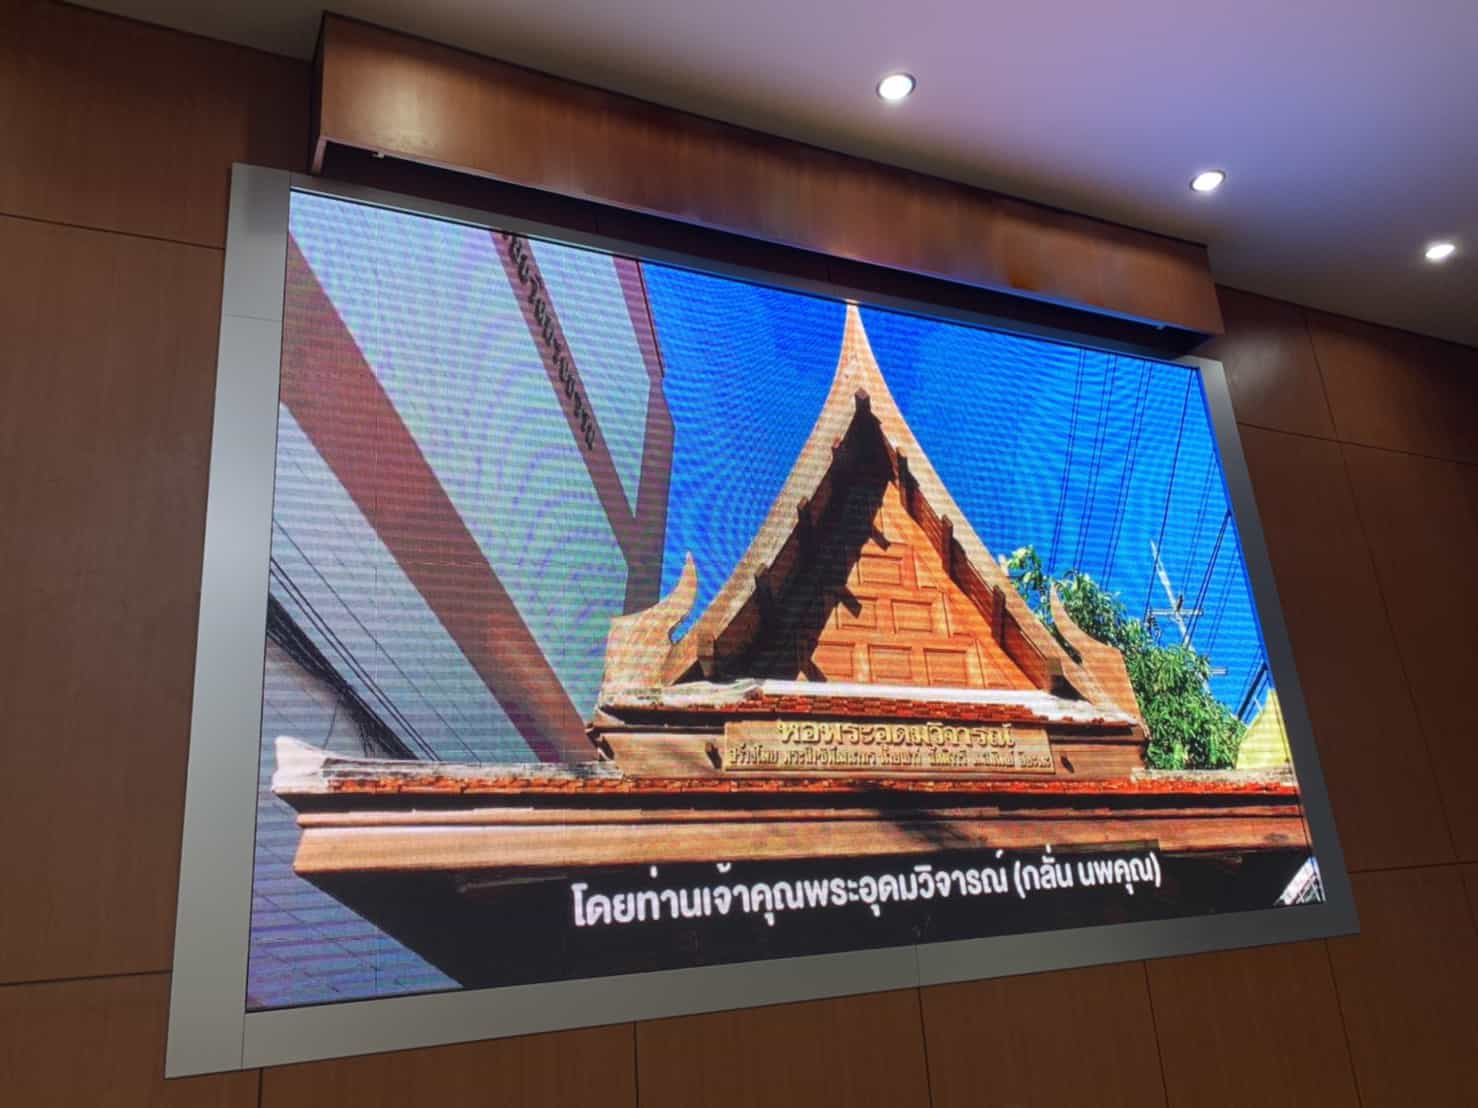 P6 Indoor Full Color จอLed Display LED Displays Improving Quality Education